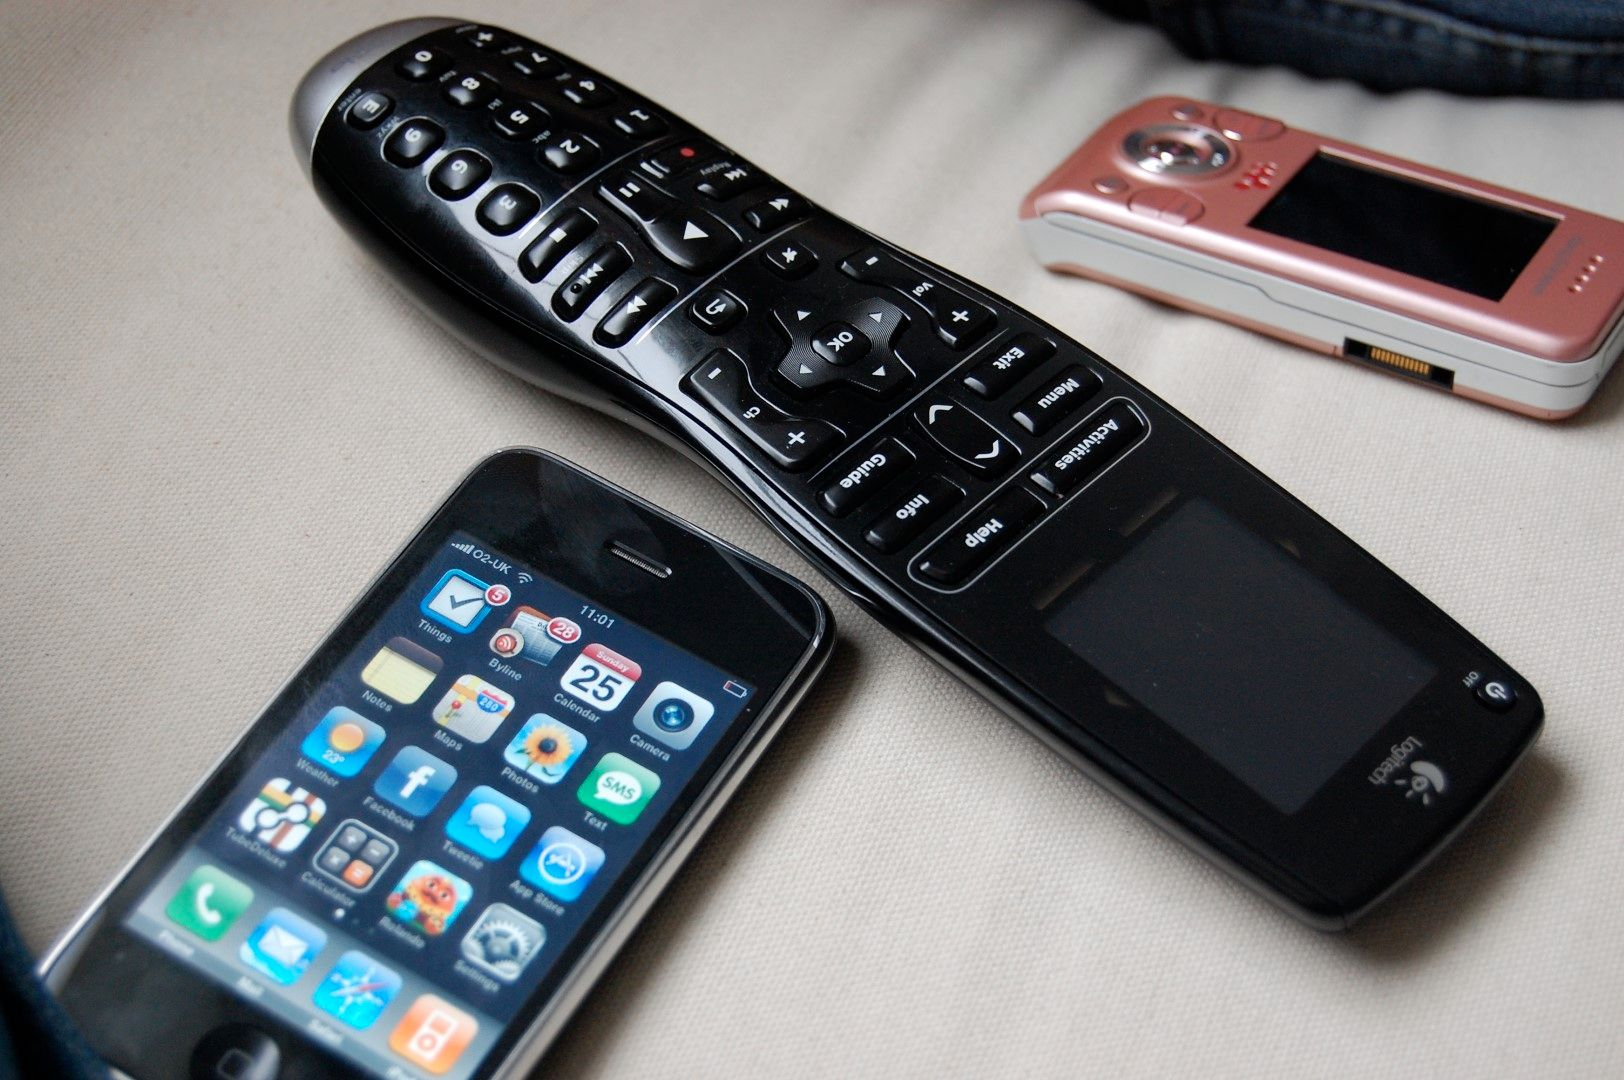 The Logitech Harmony One remote, alongside with a Sony Ericcsson slider phone and one of initial iPhone models.